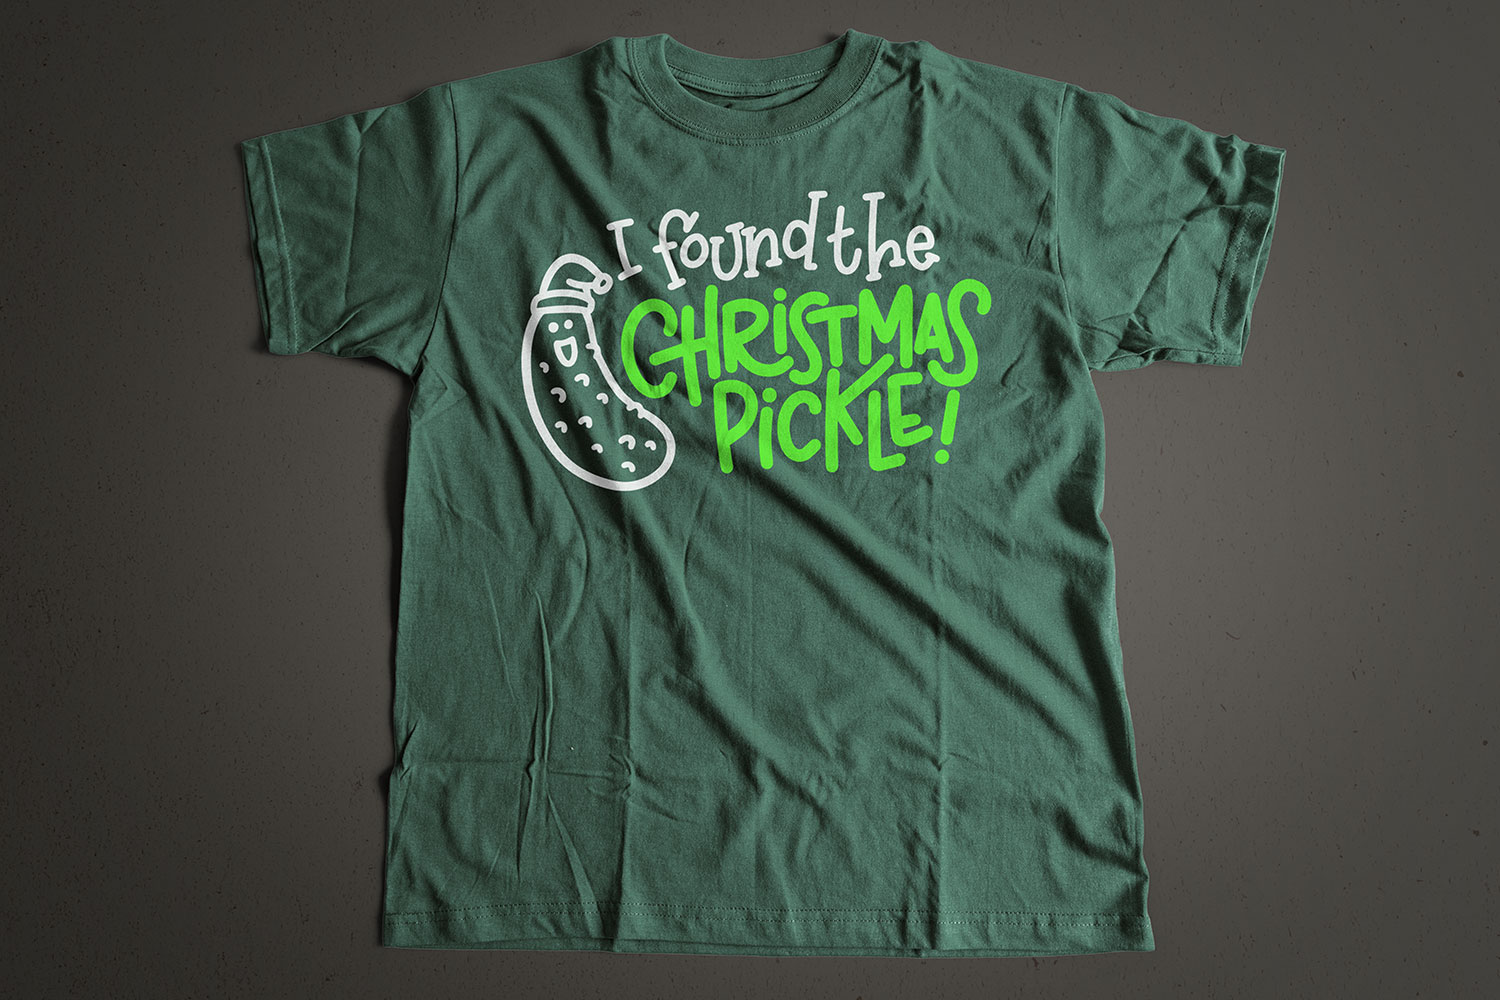 I Found the Christmas Pickle - Hand-lettered Cut File Design example image 2